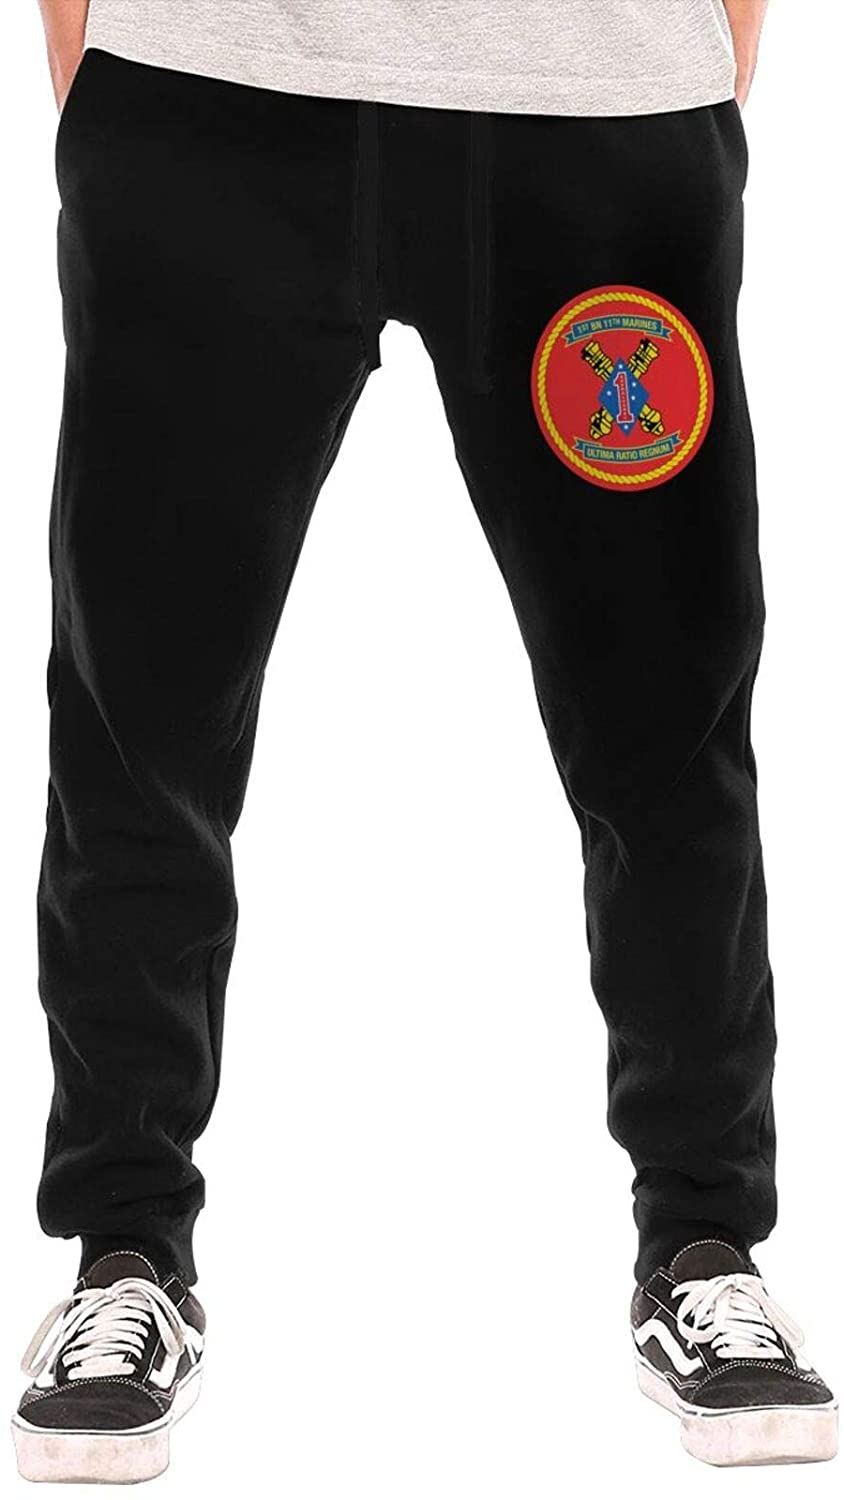 GTUGHDK 1st Battalion 11th Marines Men's Jogger Workout Athletic Pants Gym Pockets Drawstring Long Pants